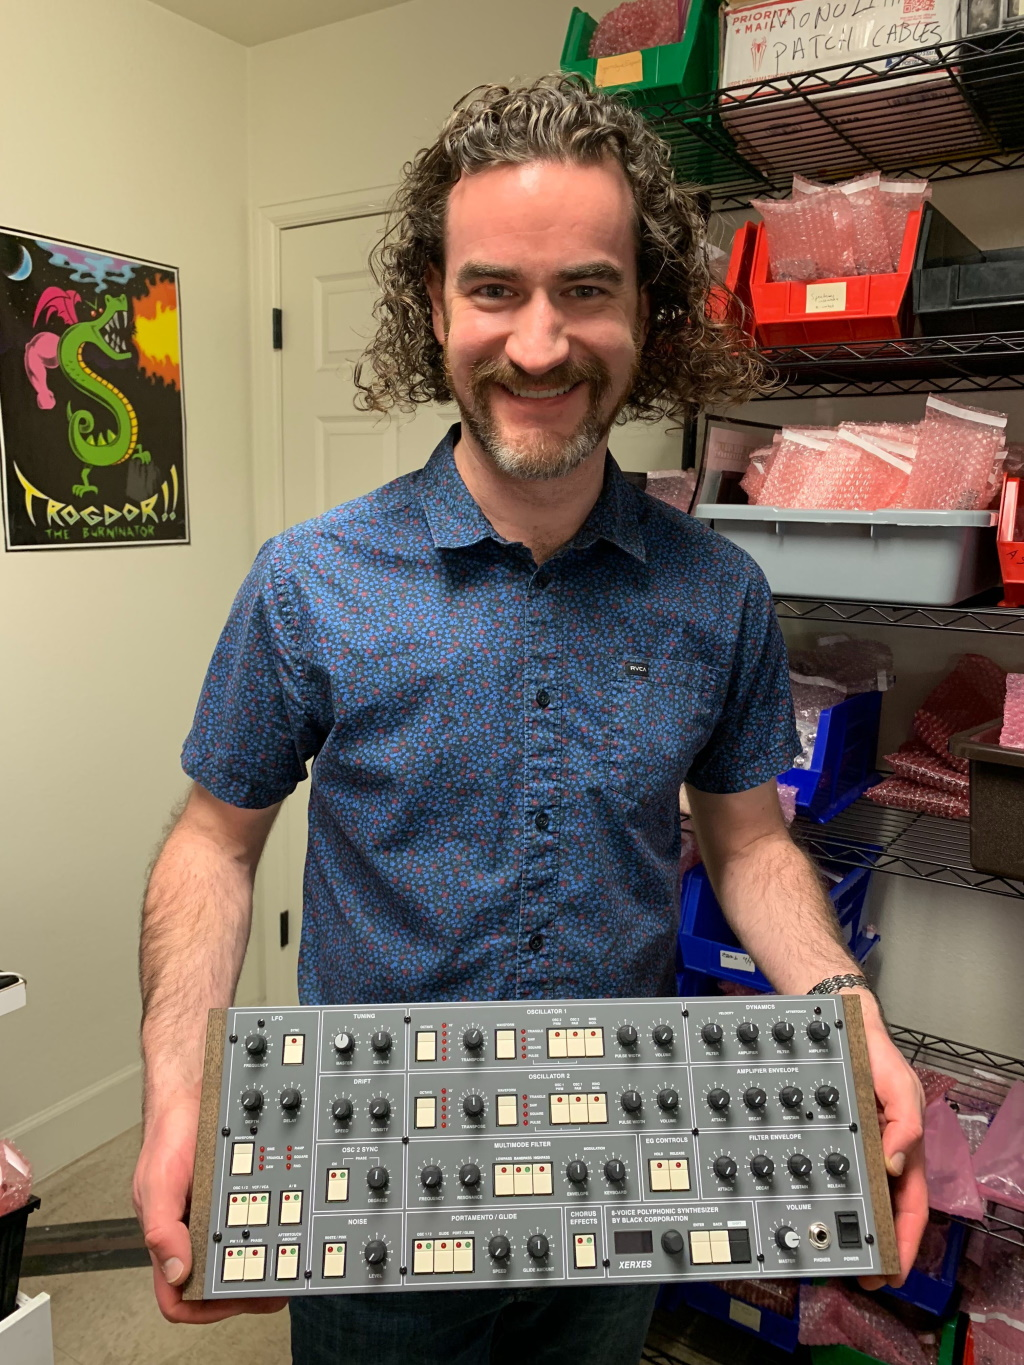 William Mathewson of WMDevices. WMD manufactures all there Eurorack and Pedals in-house in Denver, Colorado, USA.